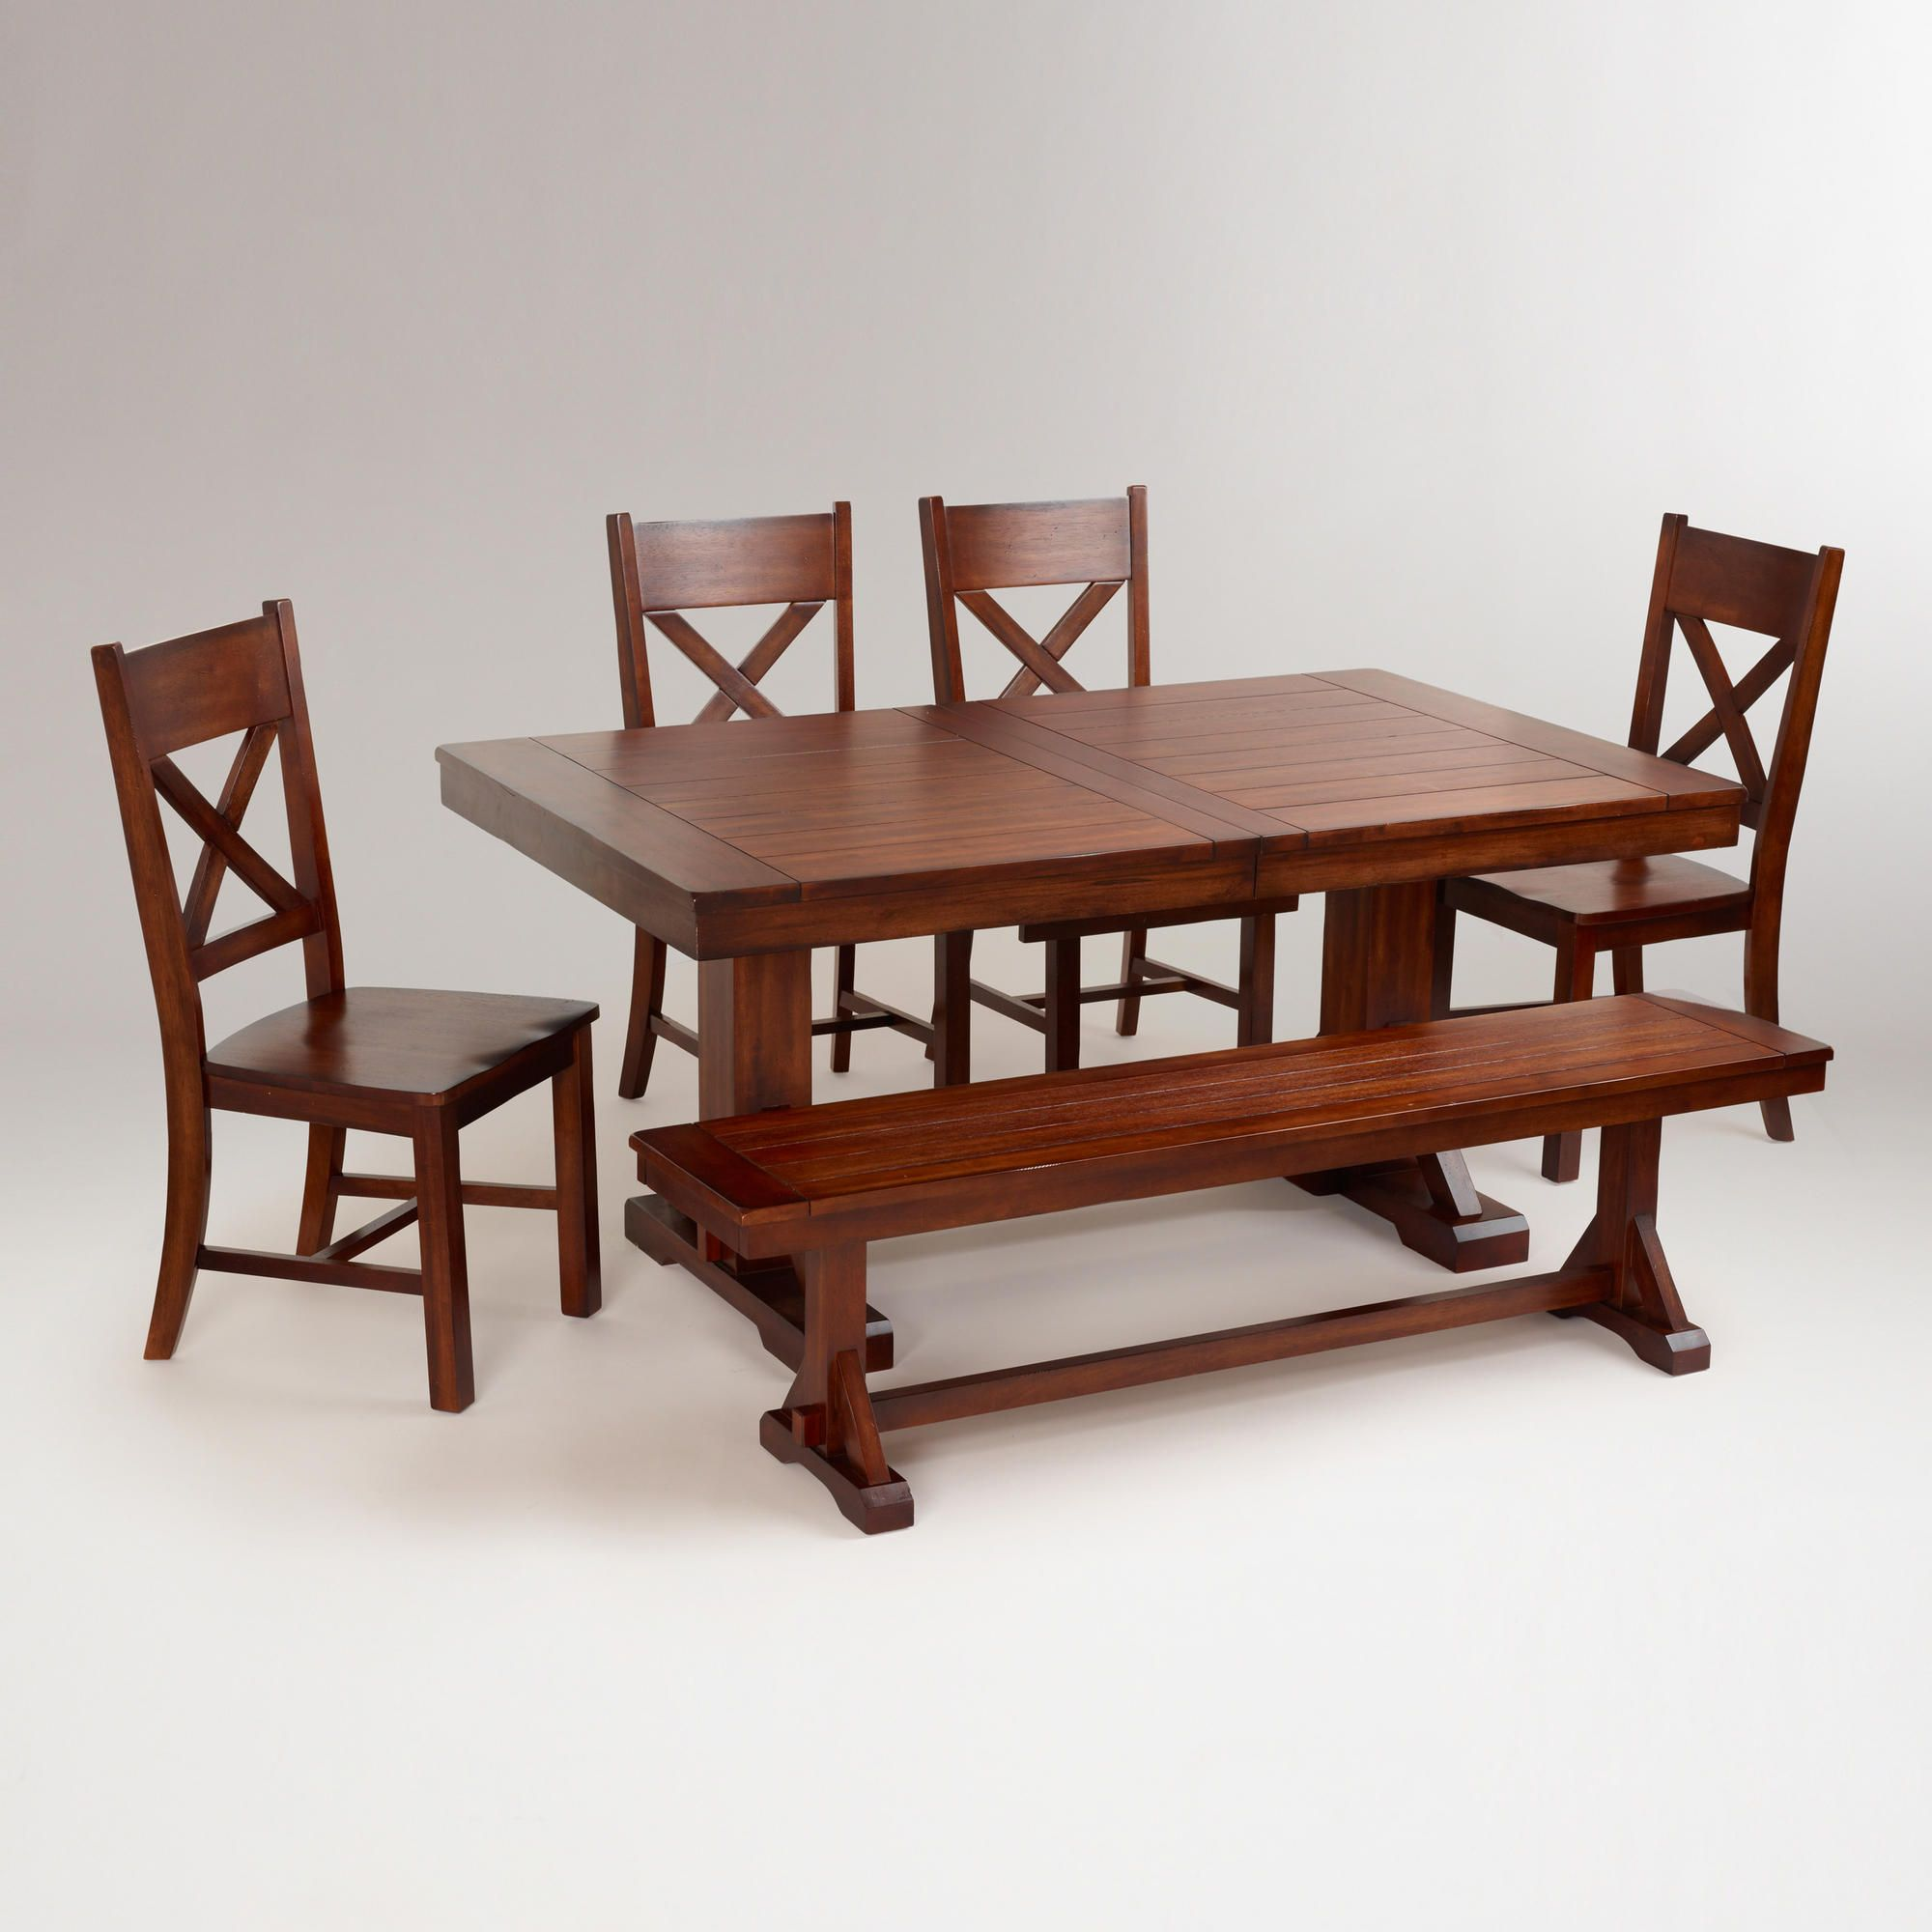 Rustic Wood Brinley Fixed Dining Table Black Dining Room Chairs